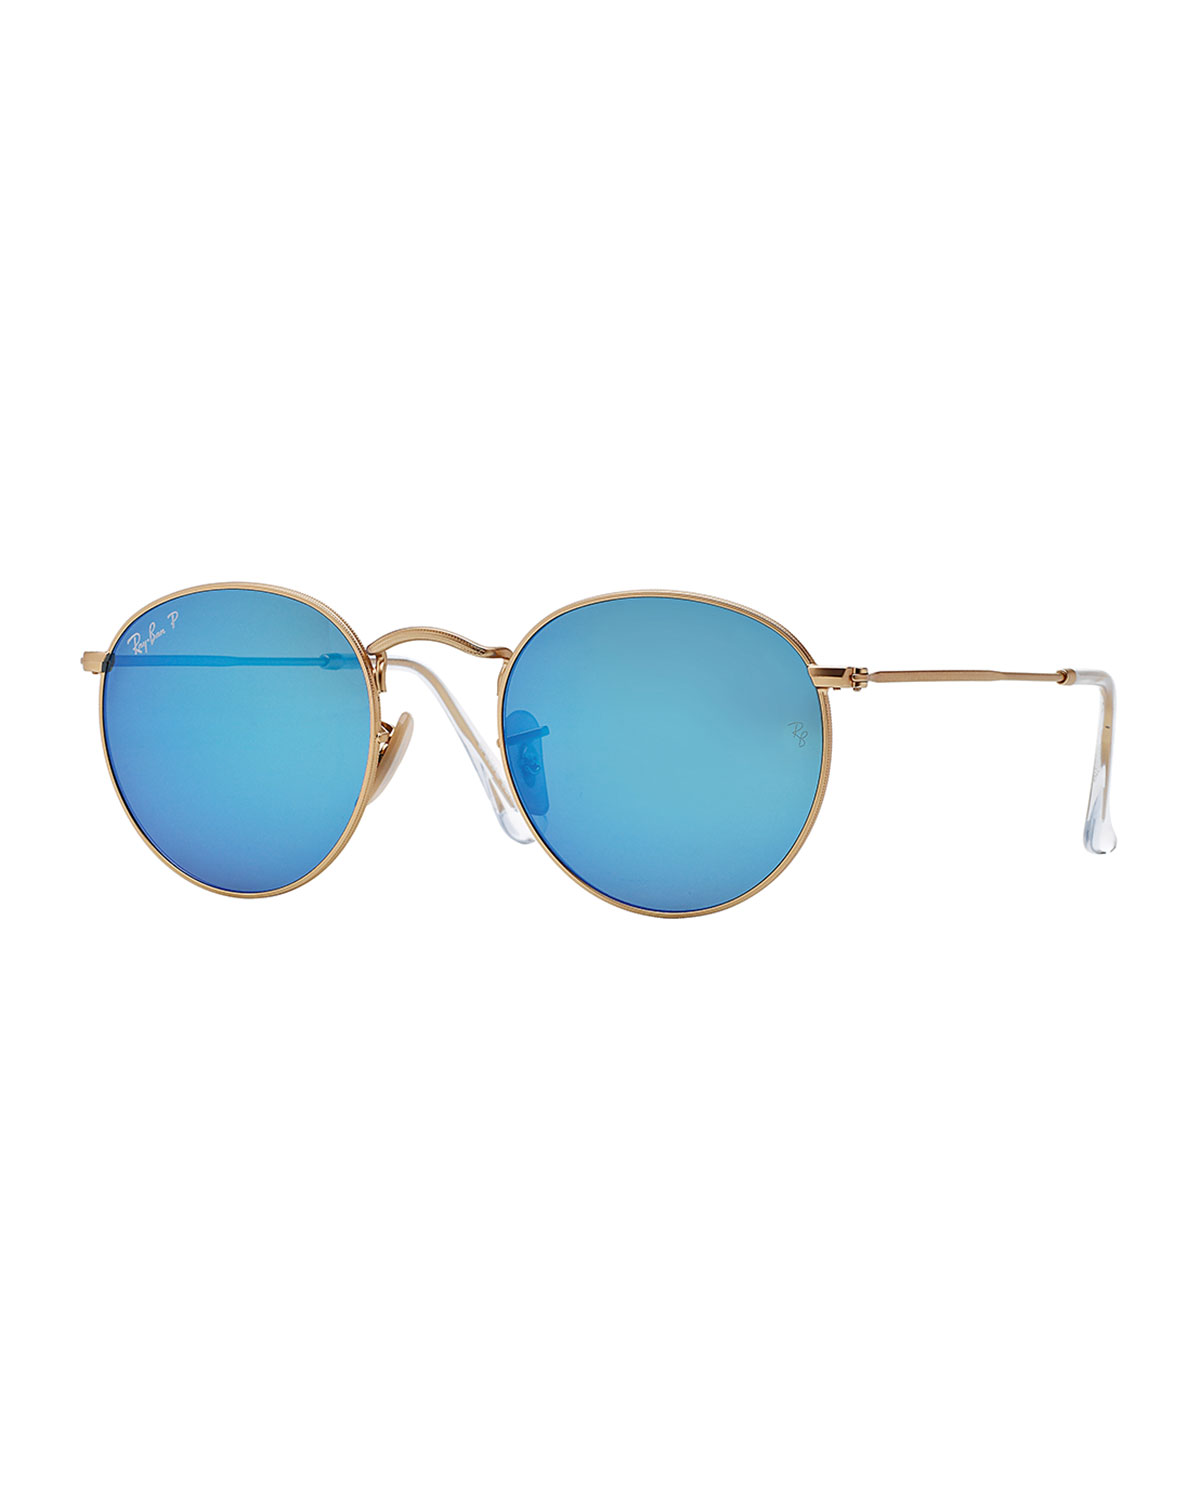 4c54052a55 Ray-Ban Polarized Round Metal-Frame Sunglasses with Blue Mirror Lens ...